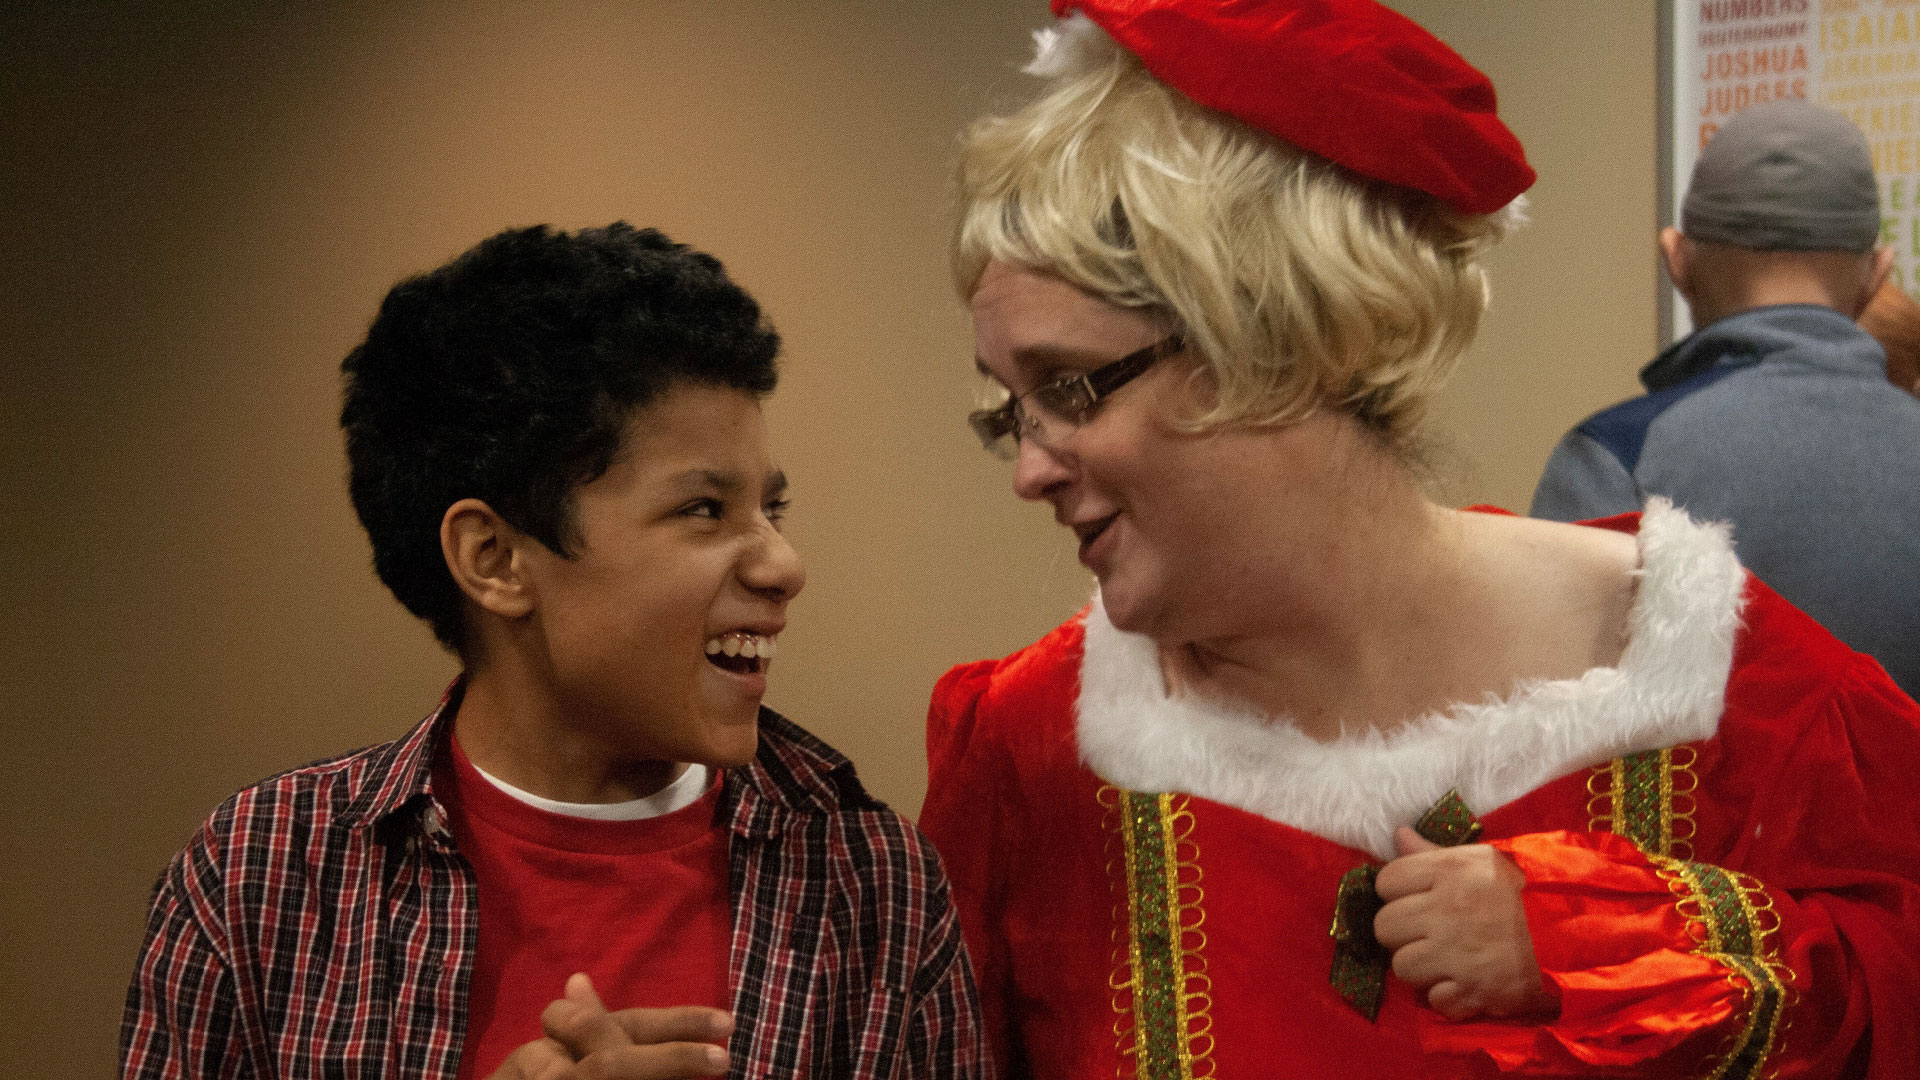 A volunteer dressed up at a Special Friends event at Brookwood Church interacts with a smiling Special Friend.